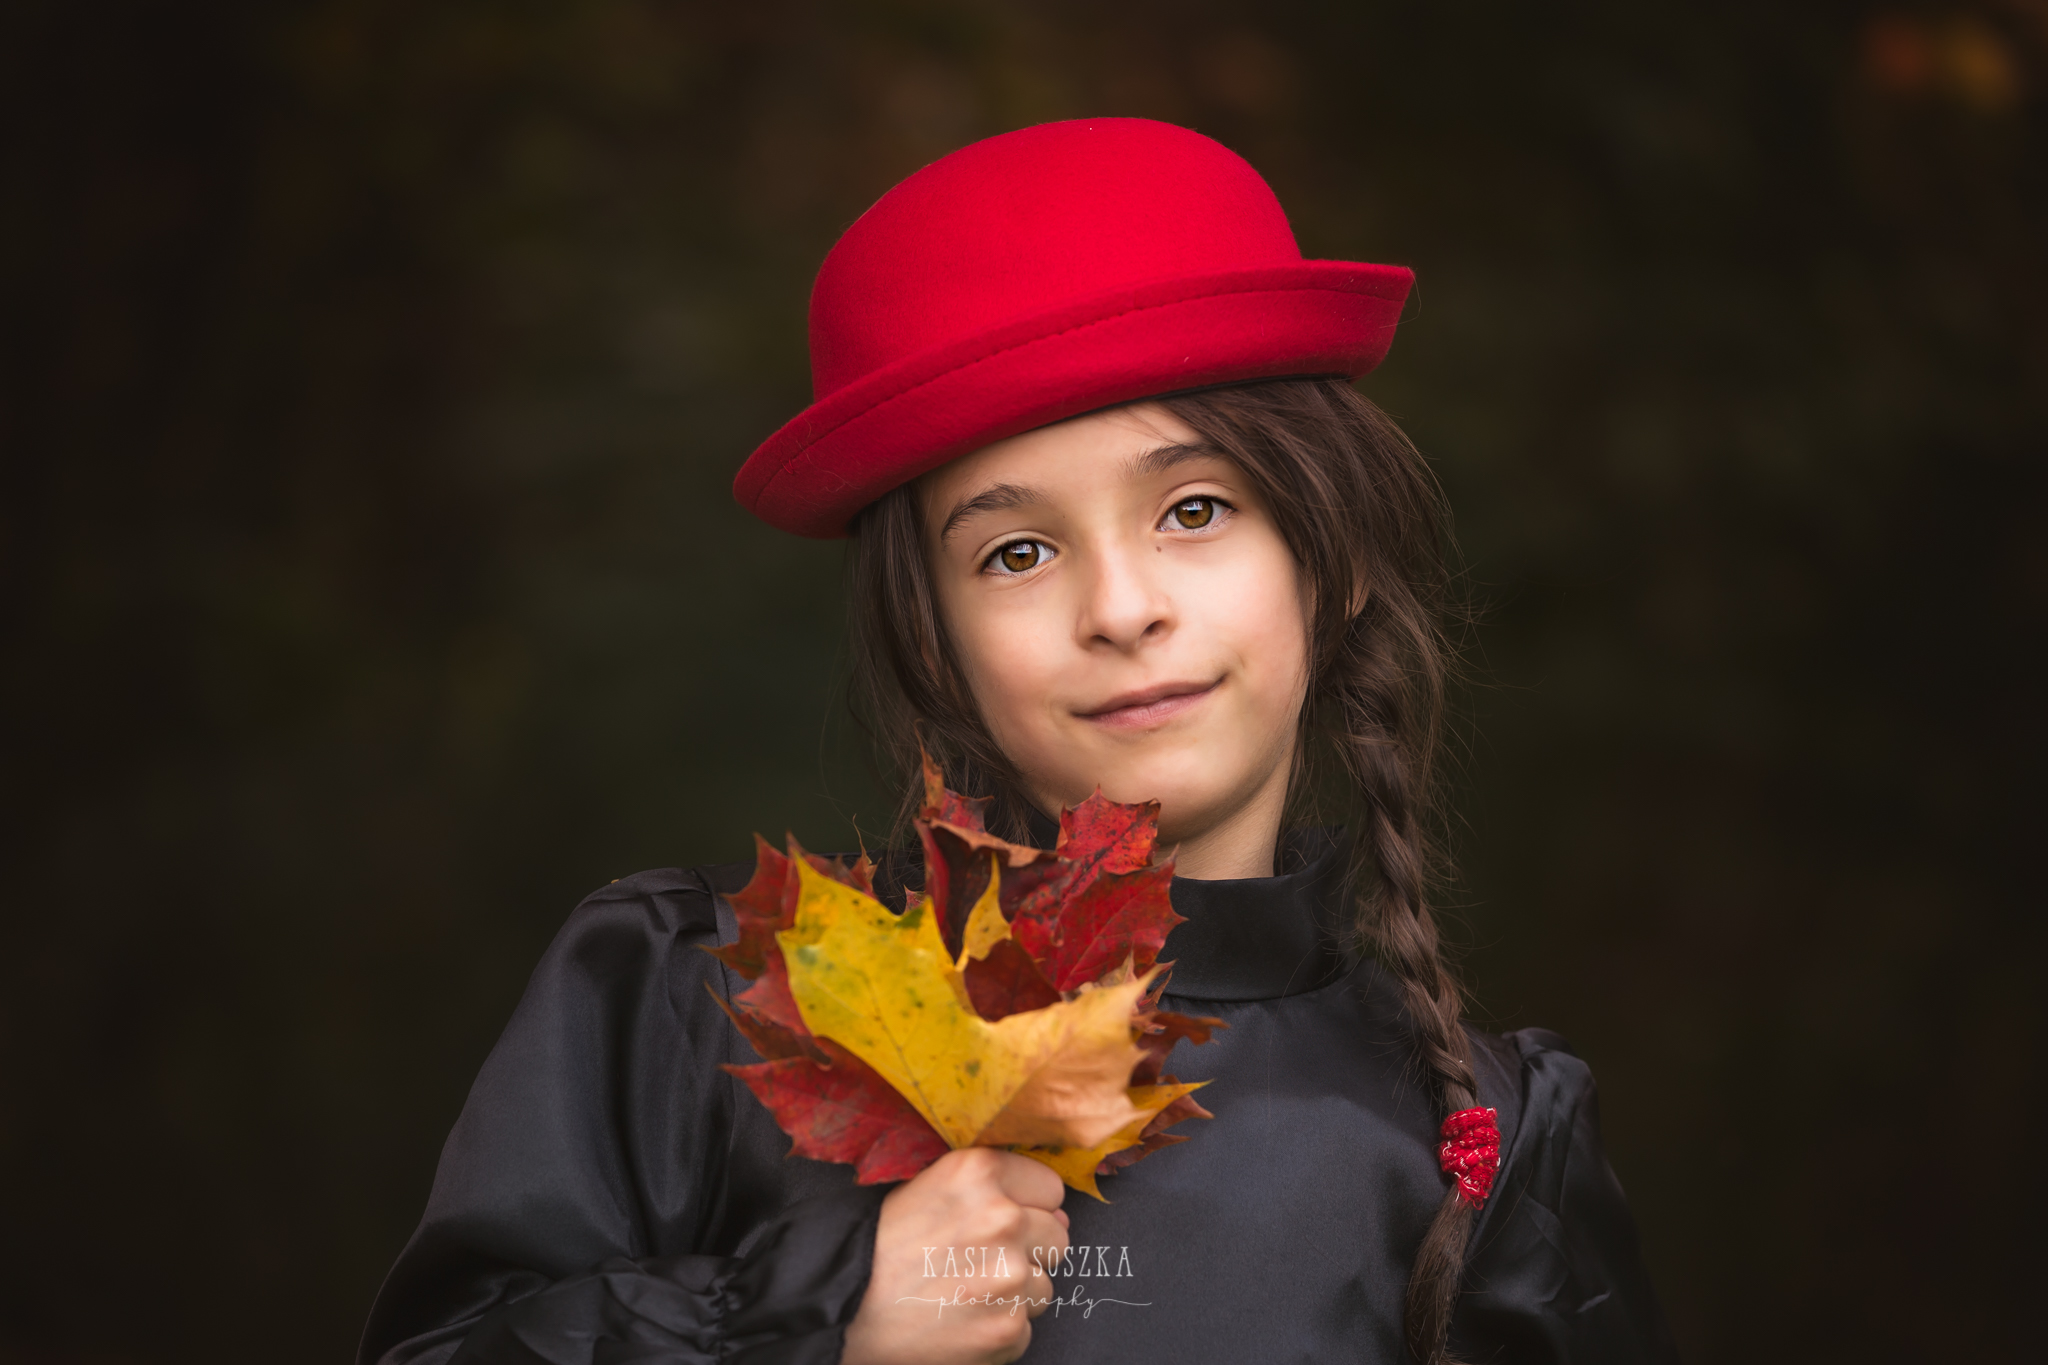 Child photography Leeds, York, Bradford., Harrogate: little girl in a red hat with autumn leaves. Child autumn session in Leeds, Yorkshire